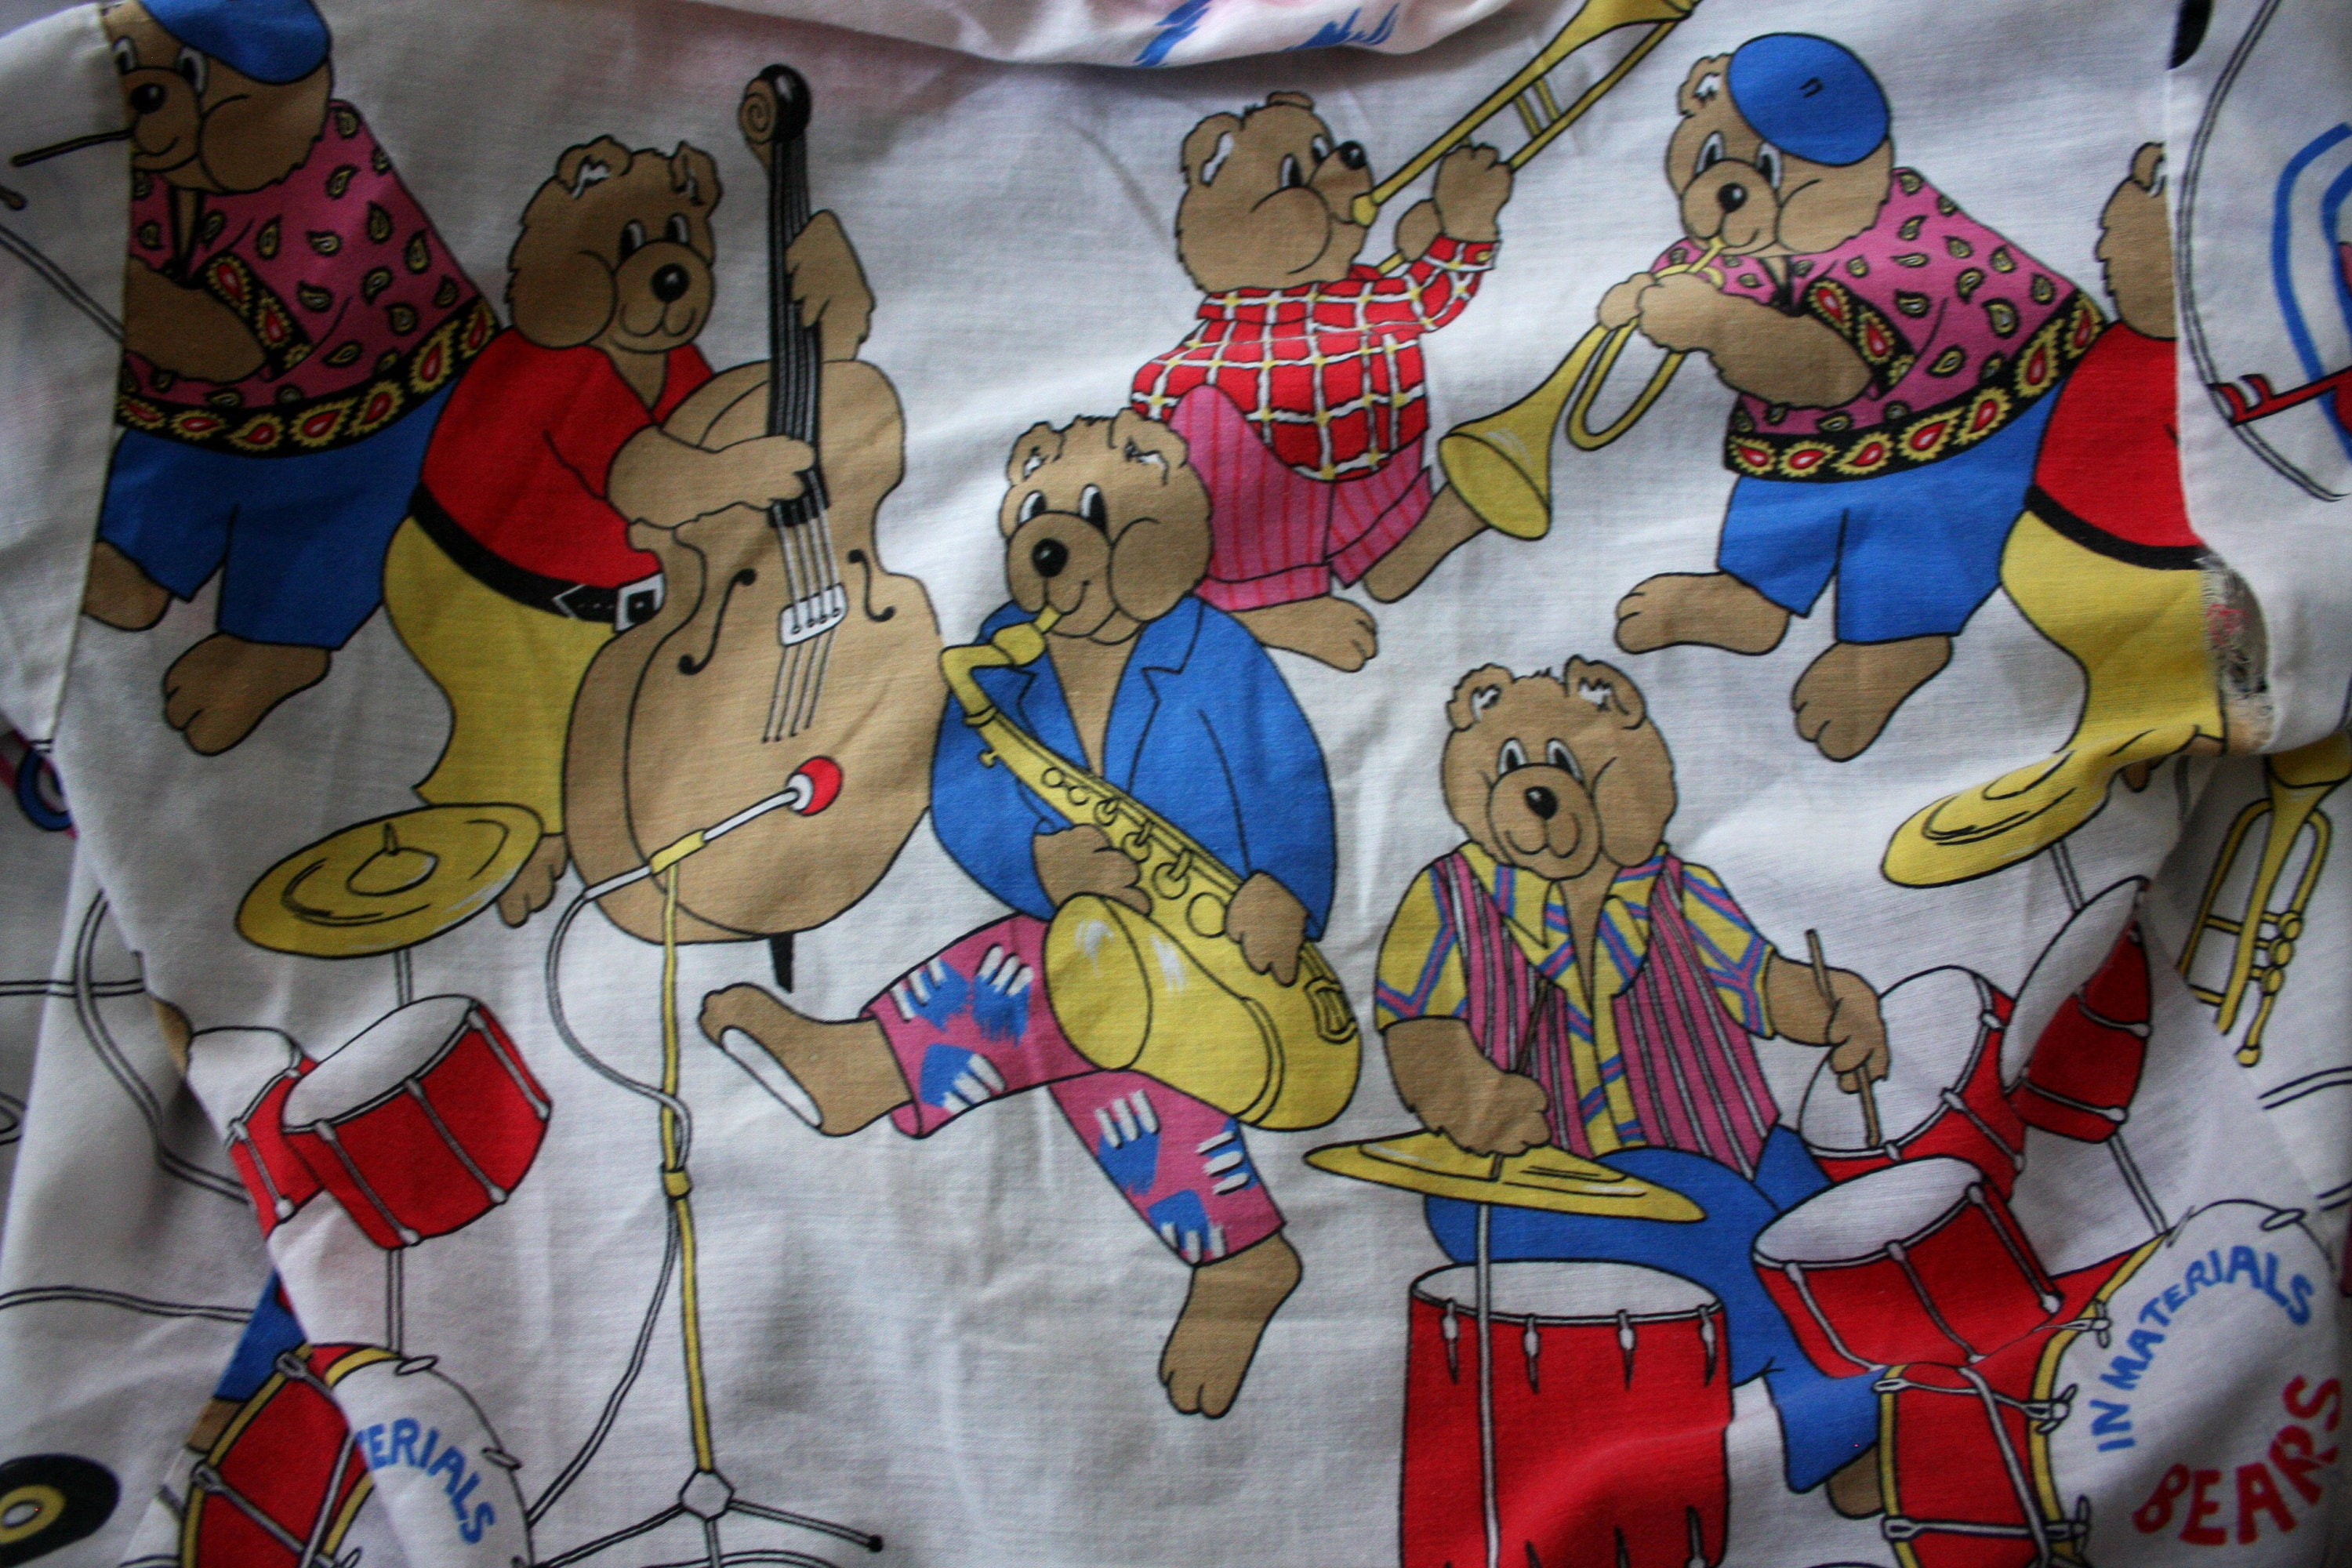 22f99f77bcf Cute Kitschy Womens Top. Rare Teddy Bear Band T Shirt. Retro Funky Womens  All Over Print Shirt. Adorable White 80s Pop Style Womens Shirt